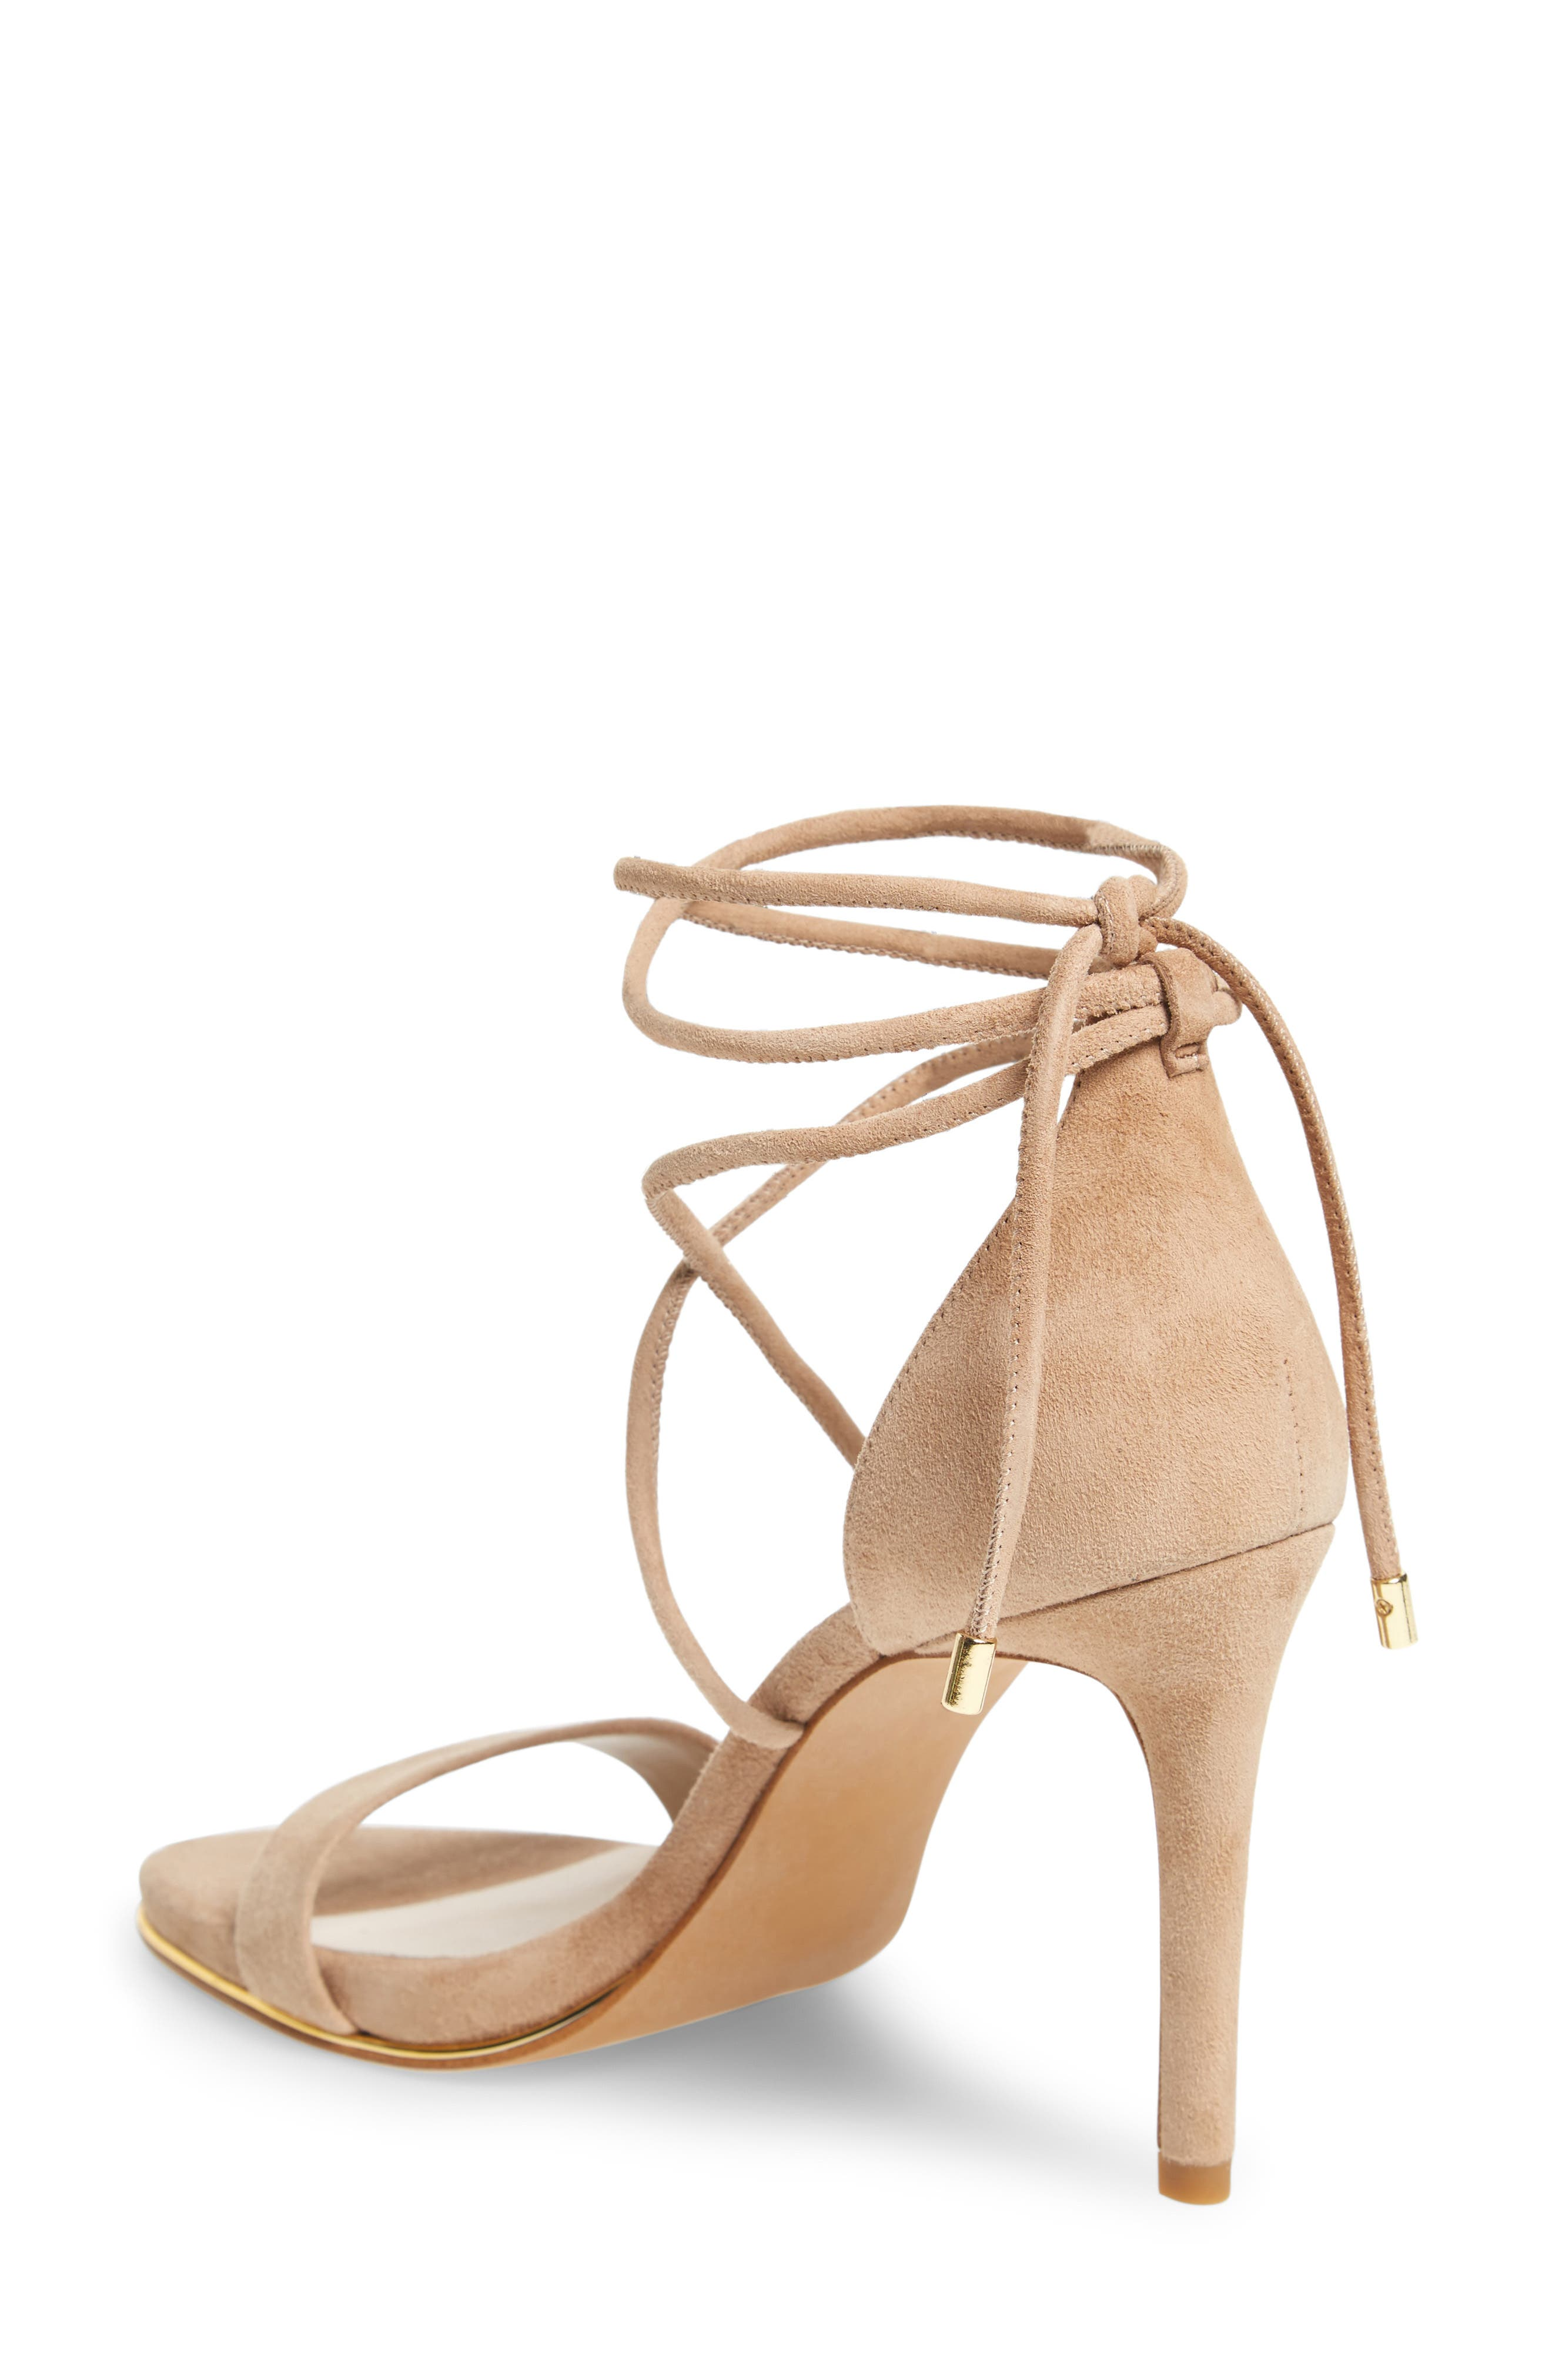 KENNETH COLE NEW YORK, Berry Wraparound Sandal, Alternate thumbnail 2, color, ALMOND SUEDE